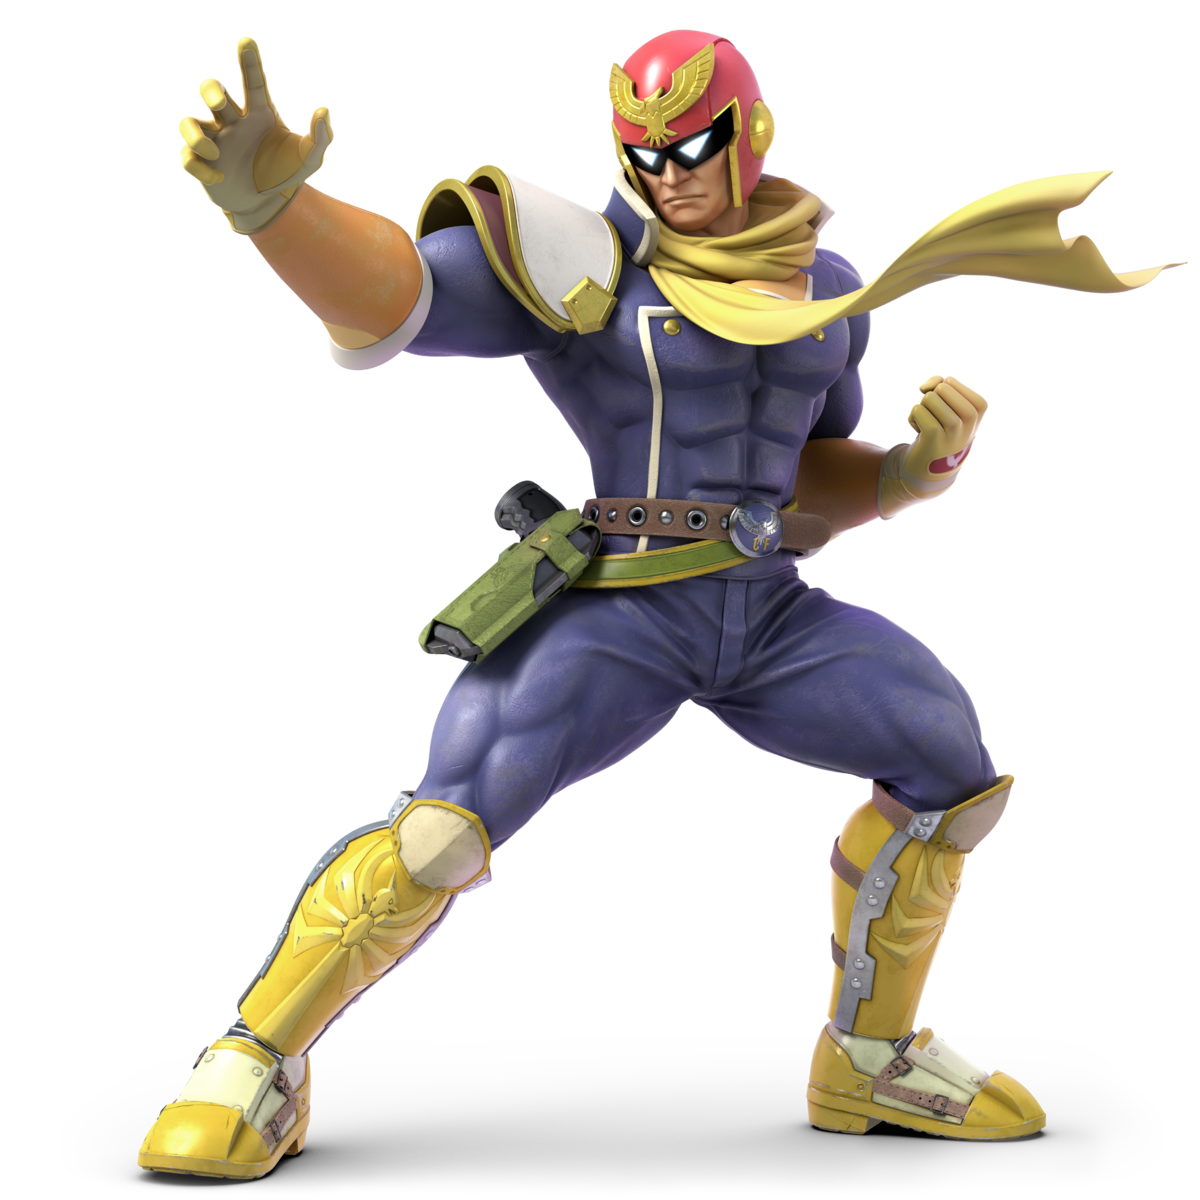 Captain Falcon Ssbu Smashwiki The Super Smash Bros Wiki